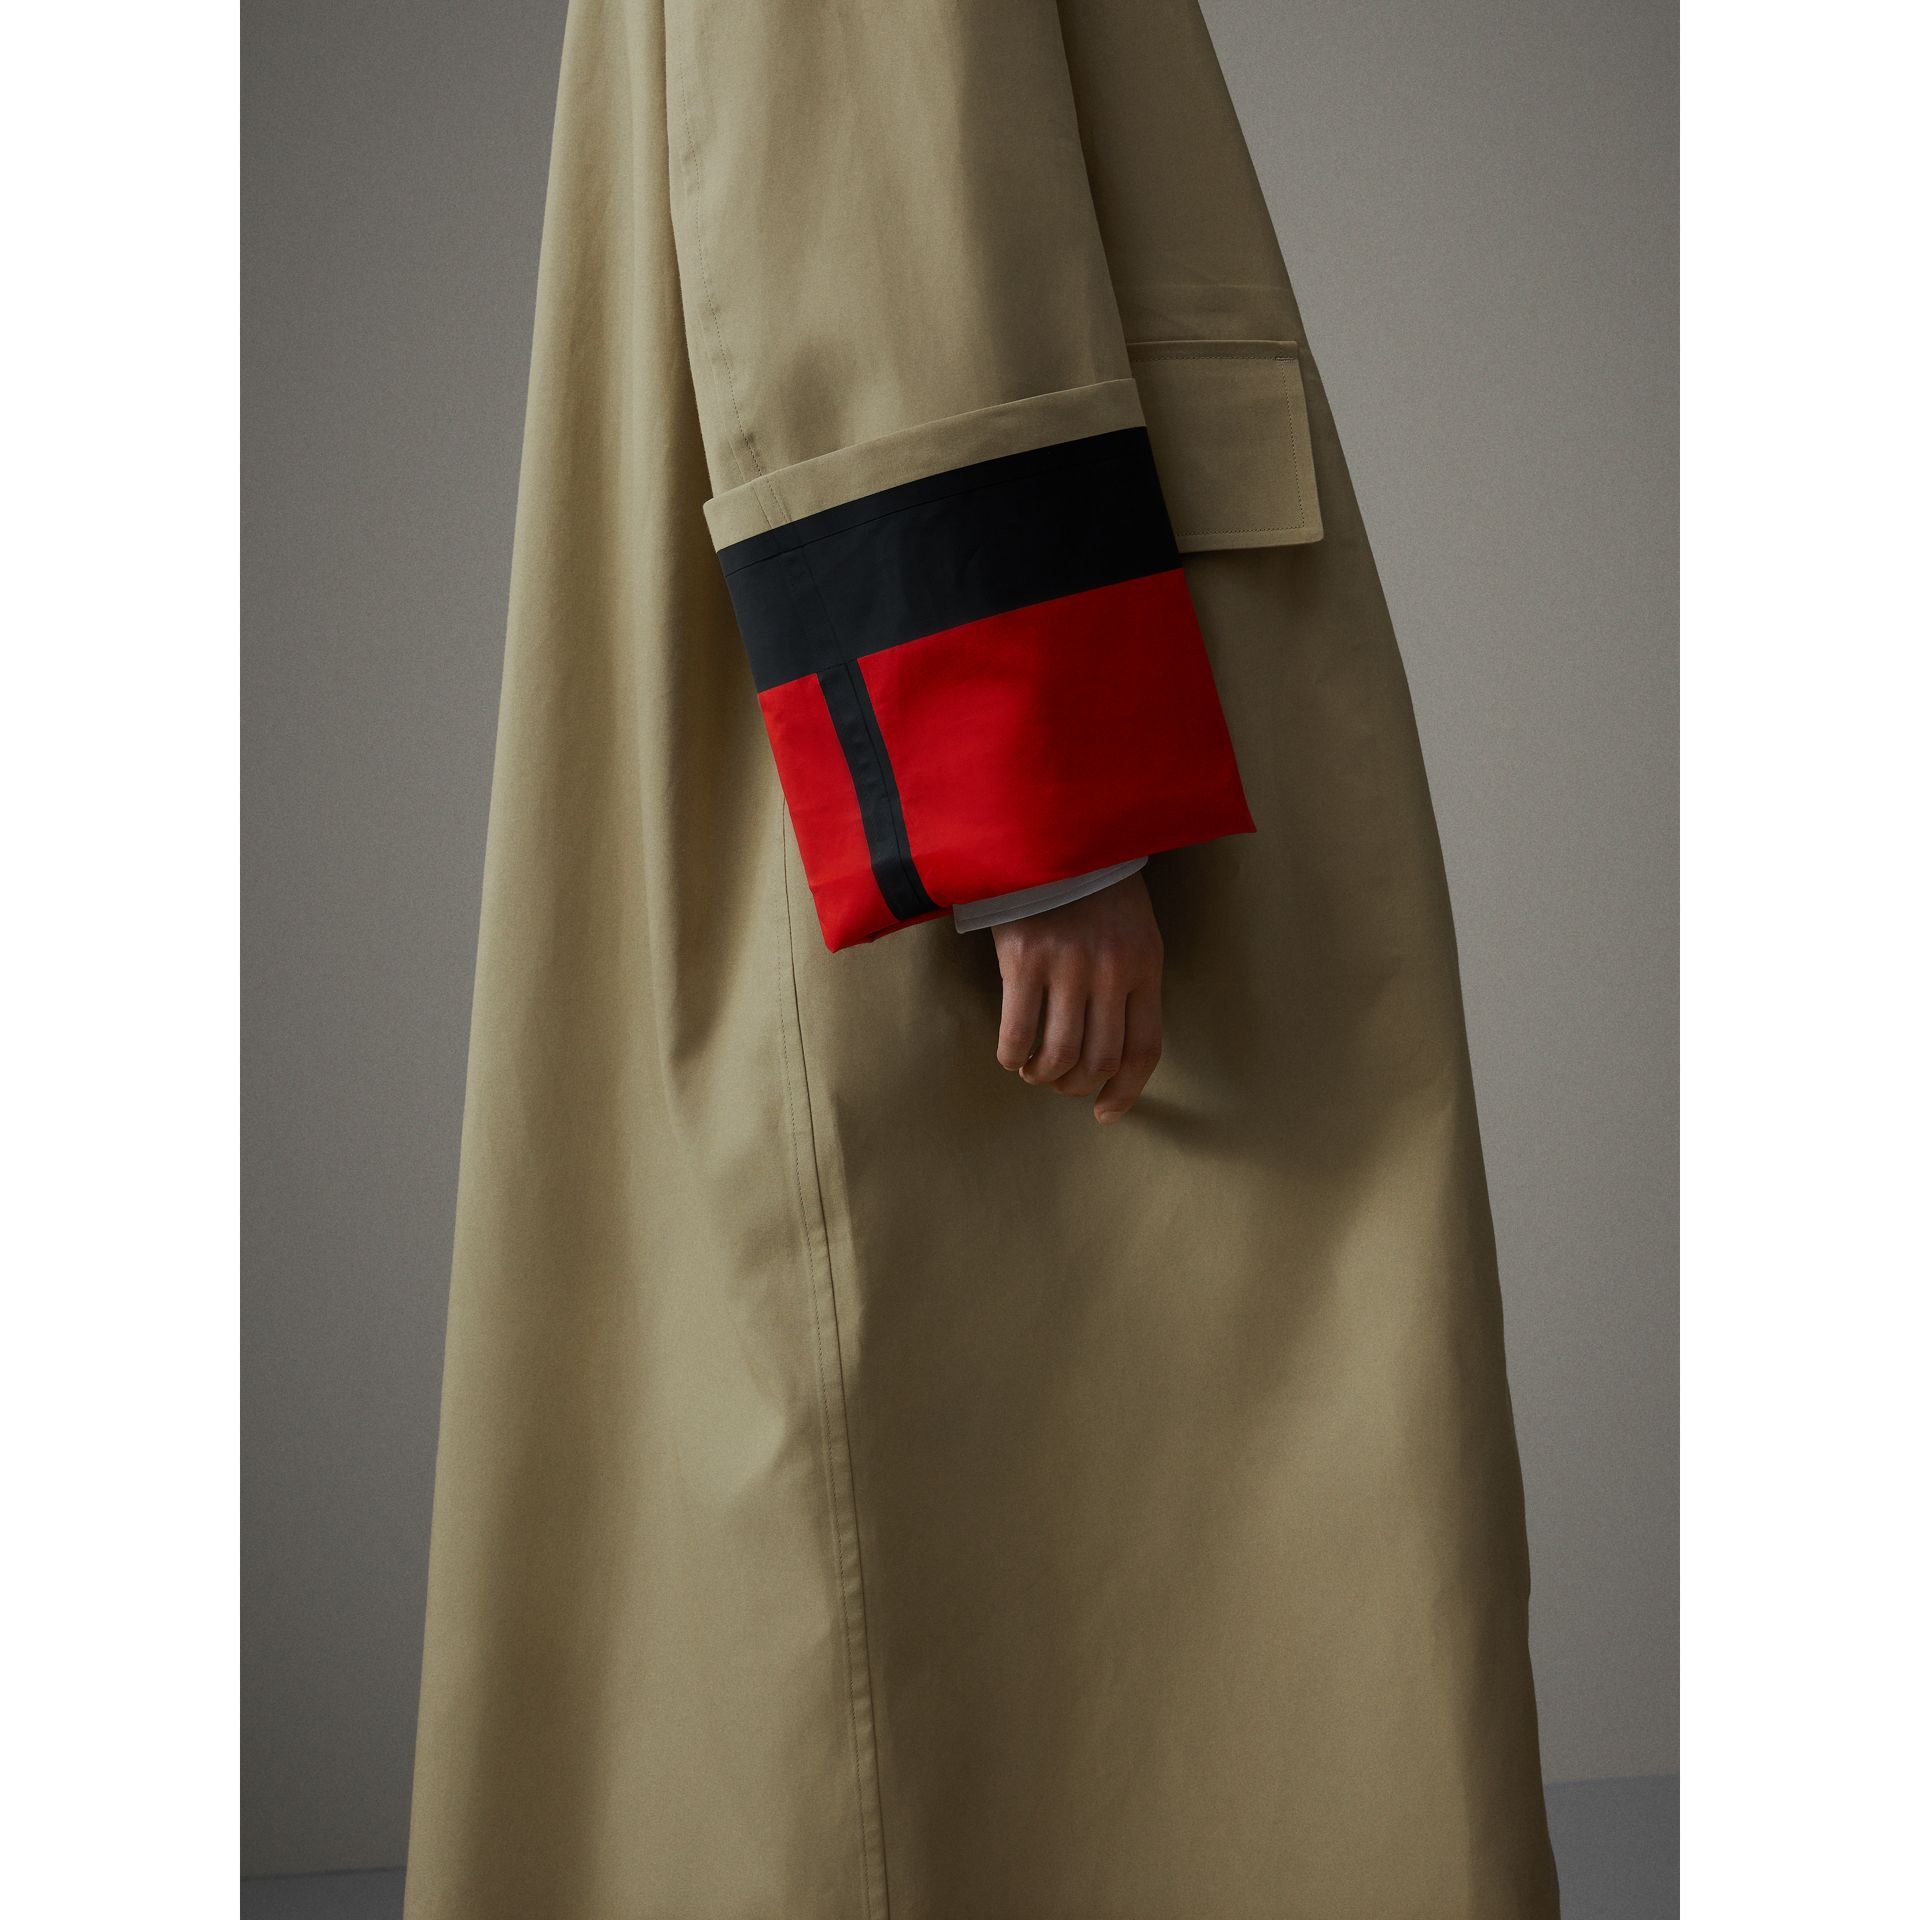 Bonded Cotton Poplin Seam-sealed Car Coat in Beige/red - Women | Burberry - gallery image 1